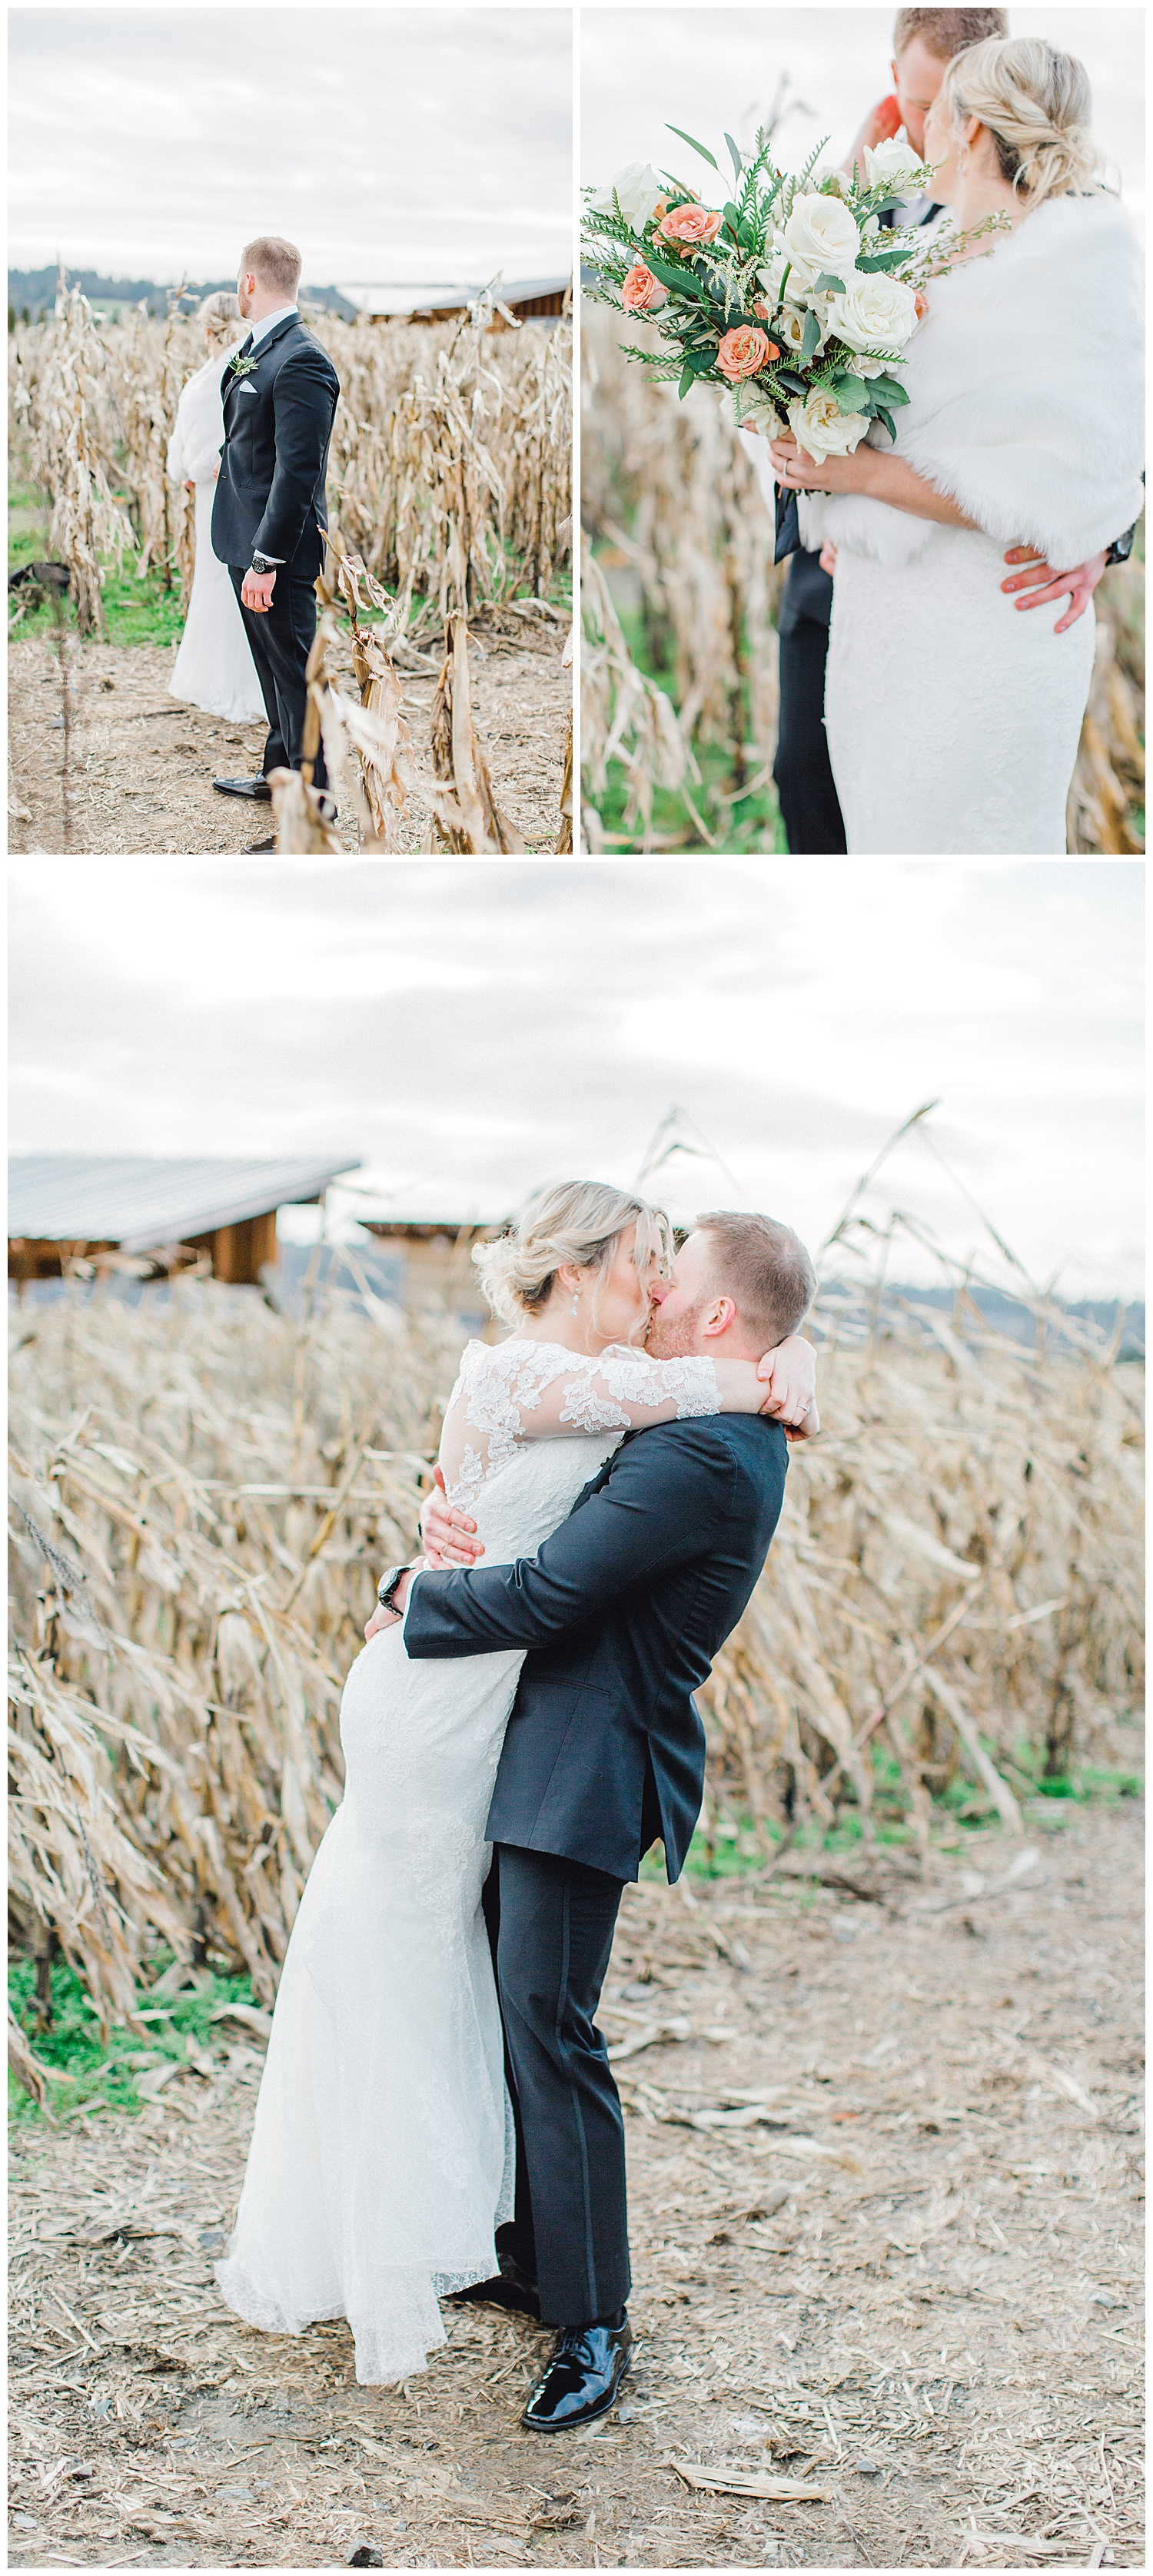 ERC-8915_A beautiful winter wedding in Snohomish, Washington at Thomas Family Farm was simply perfect.  This rustic and modern styled wedding was dripping with romance and photographed by Emma Rose Company, a pacific northwest wedding photographer..jpg